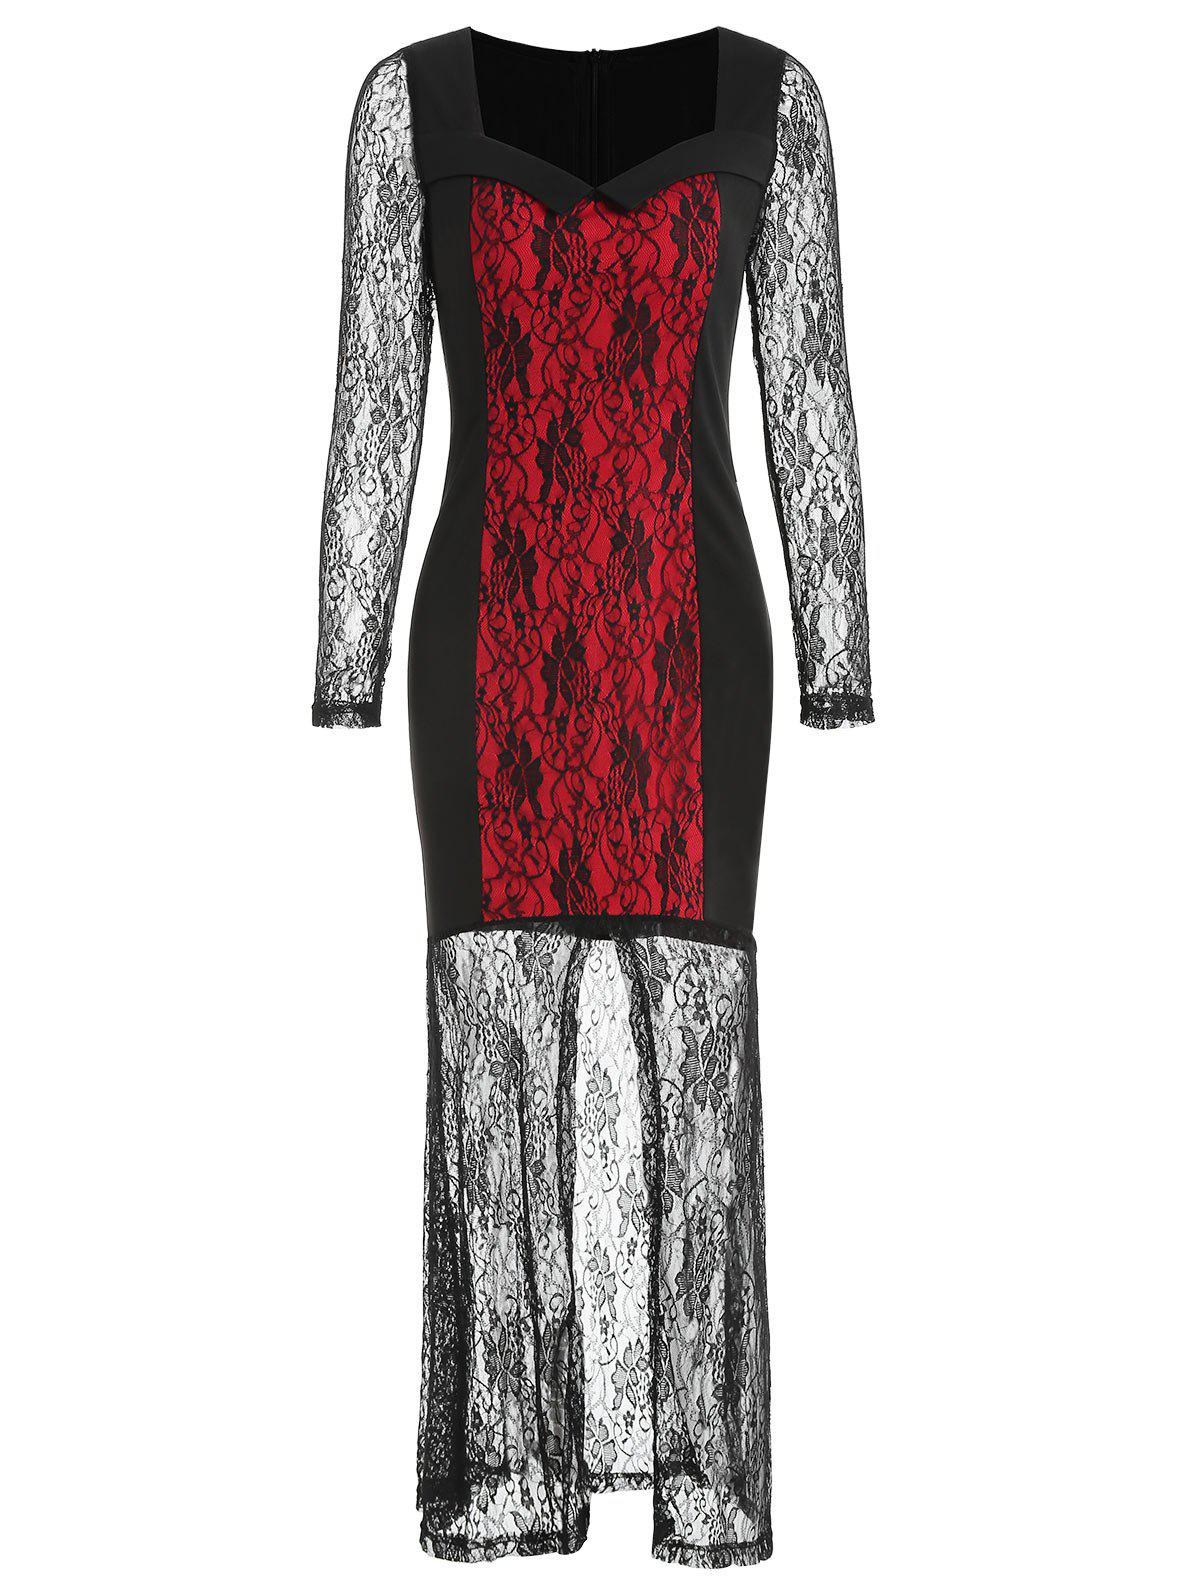 Cheap Full Sleeve Halloween Floral Lace Dress